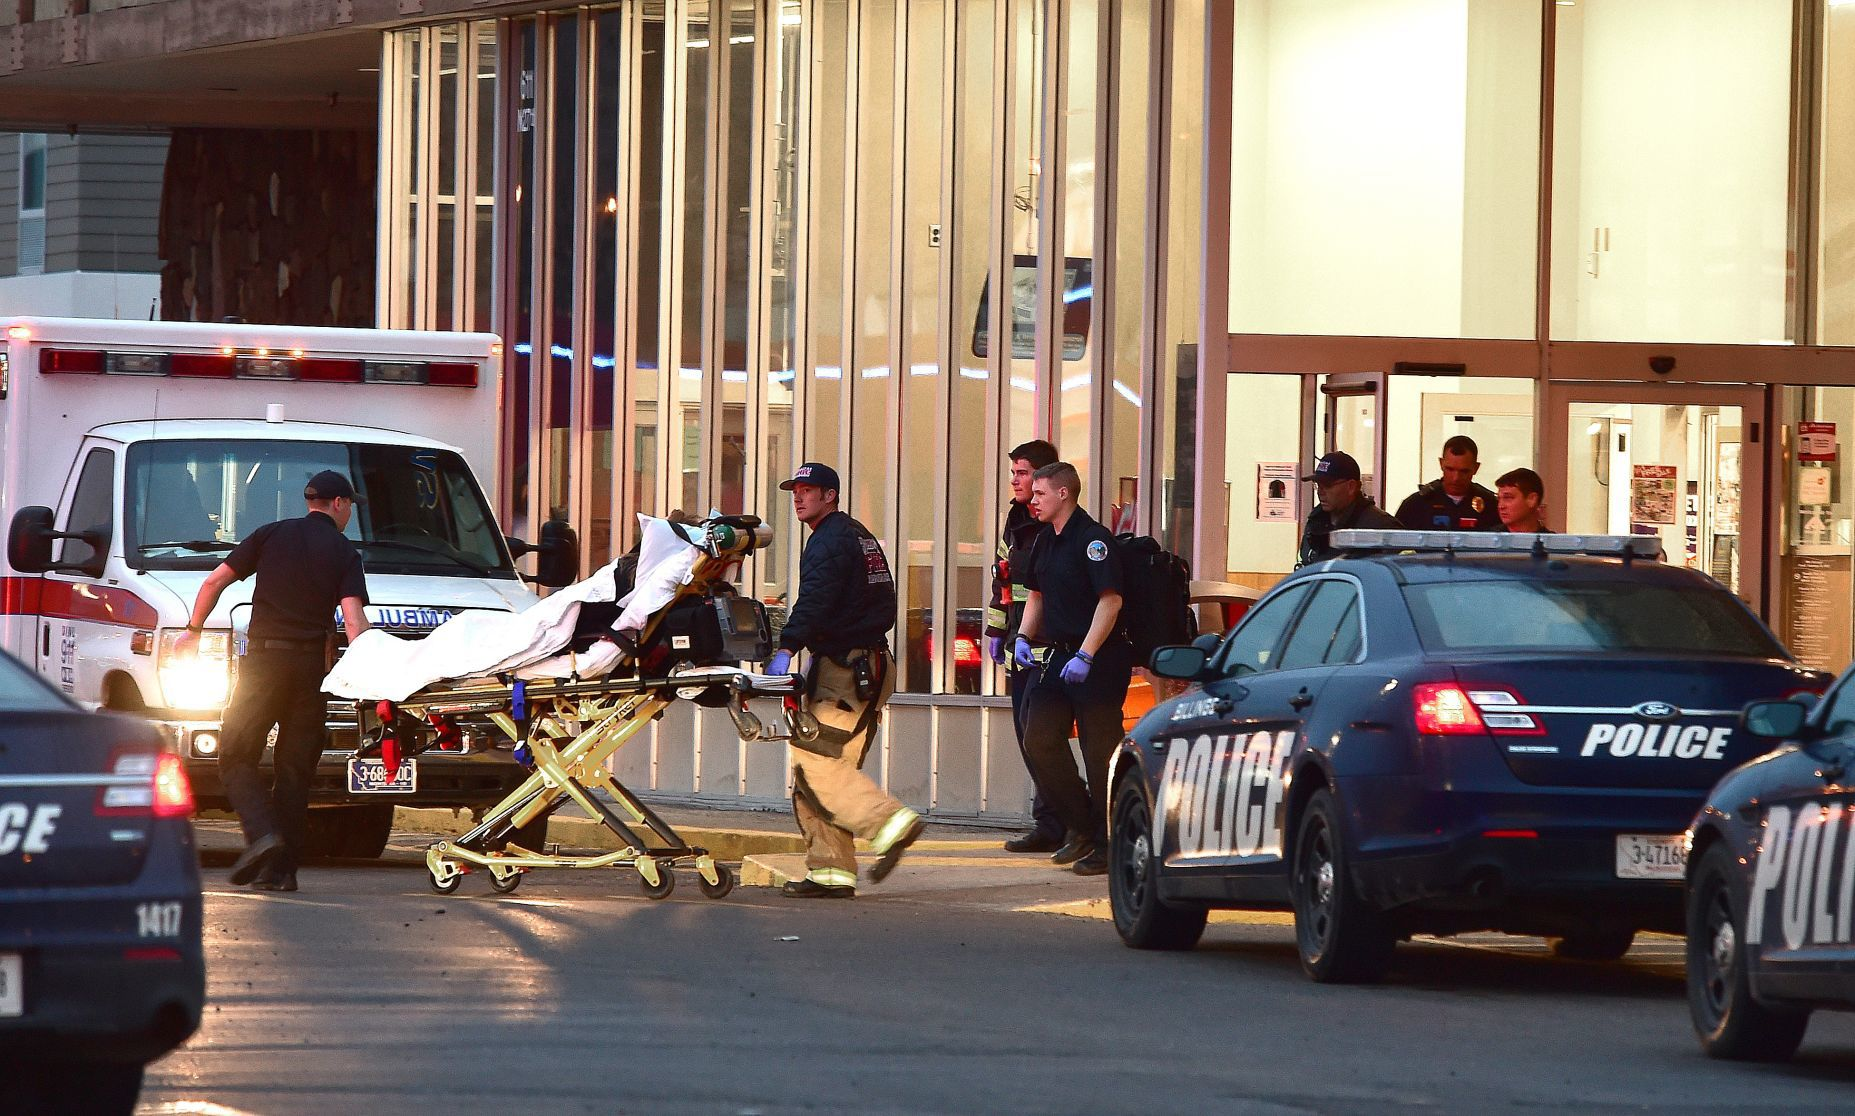 Woman stabbed while shopping at downtown Billings grocery store | Billings Gazette